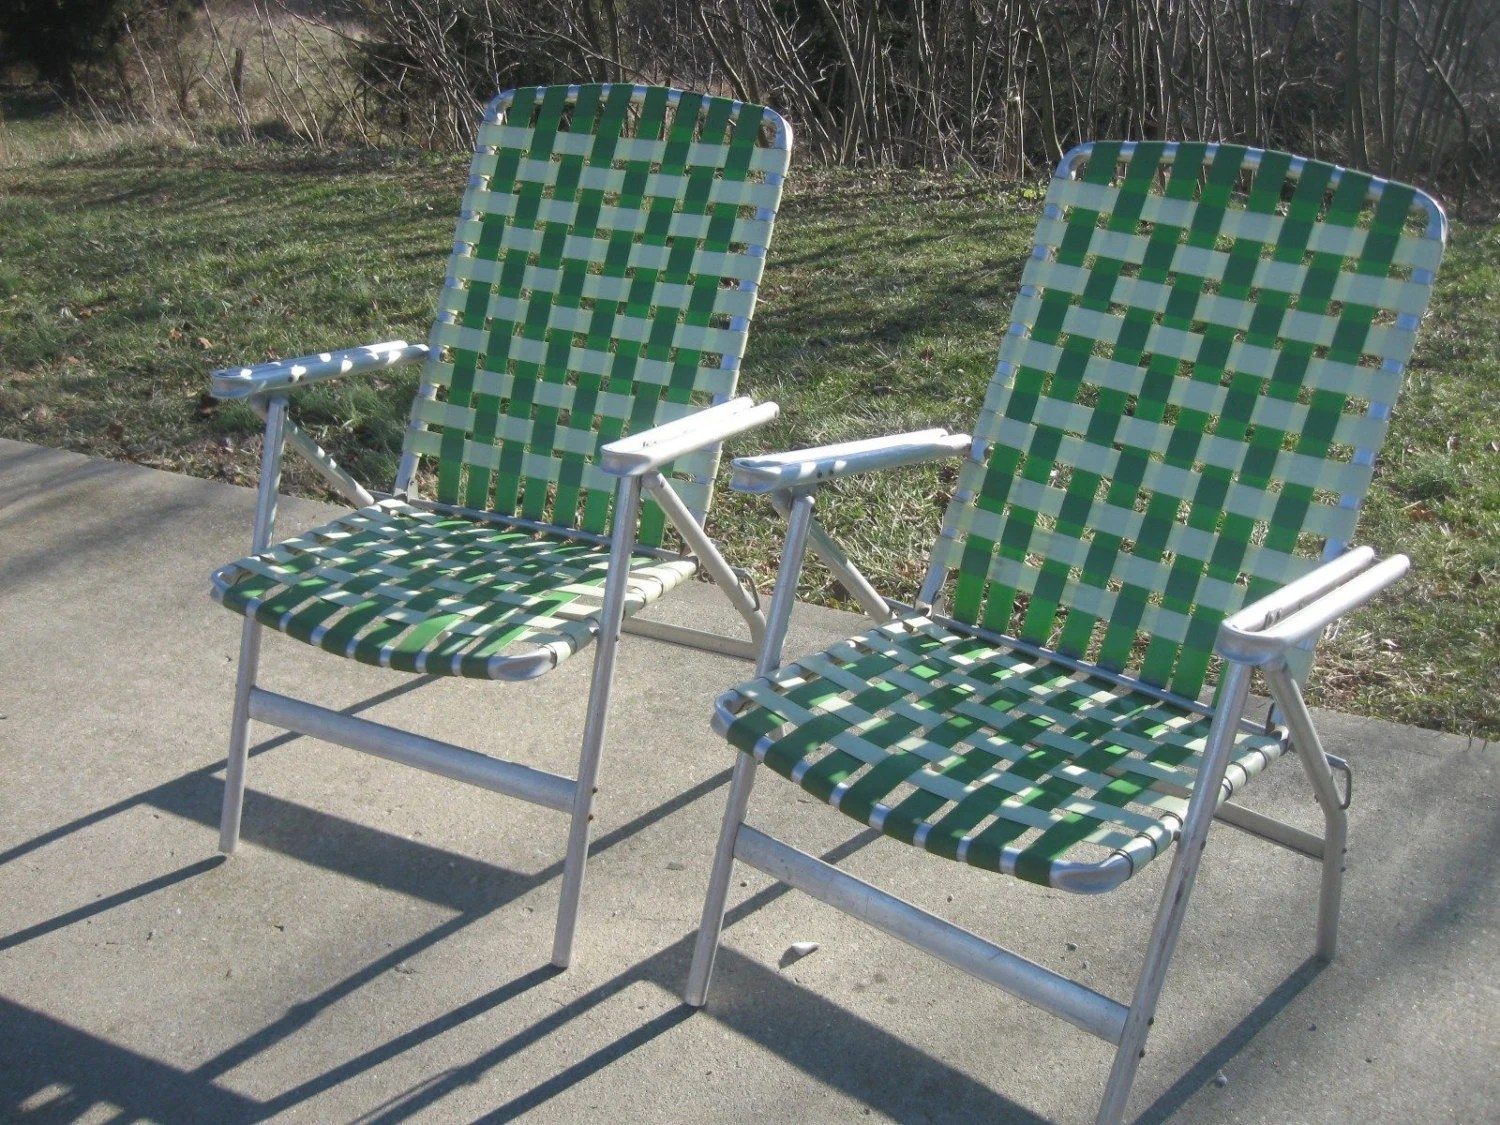 Aluminum Lawn Chairs Folding Lawn Chairs Deals On 1001 Blocks